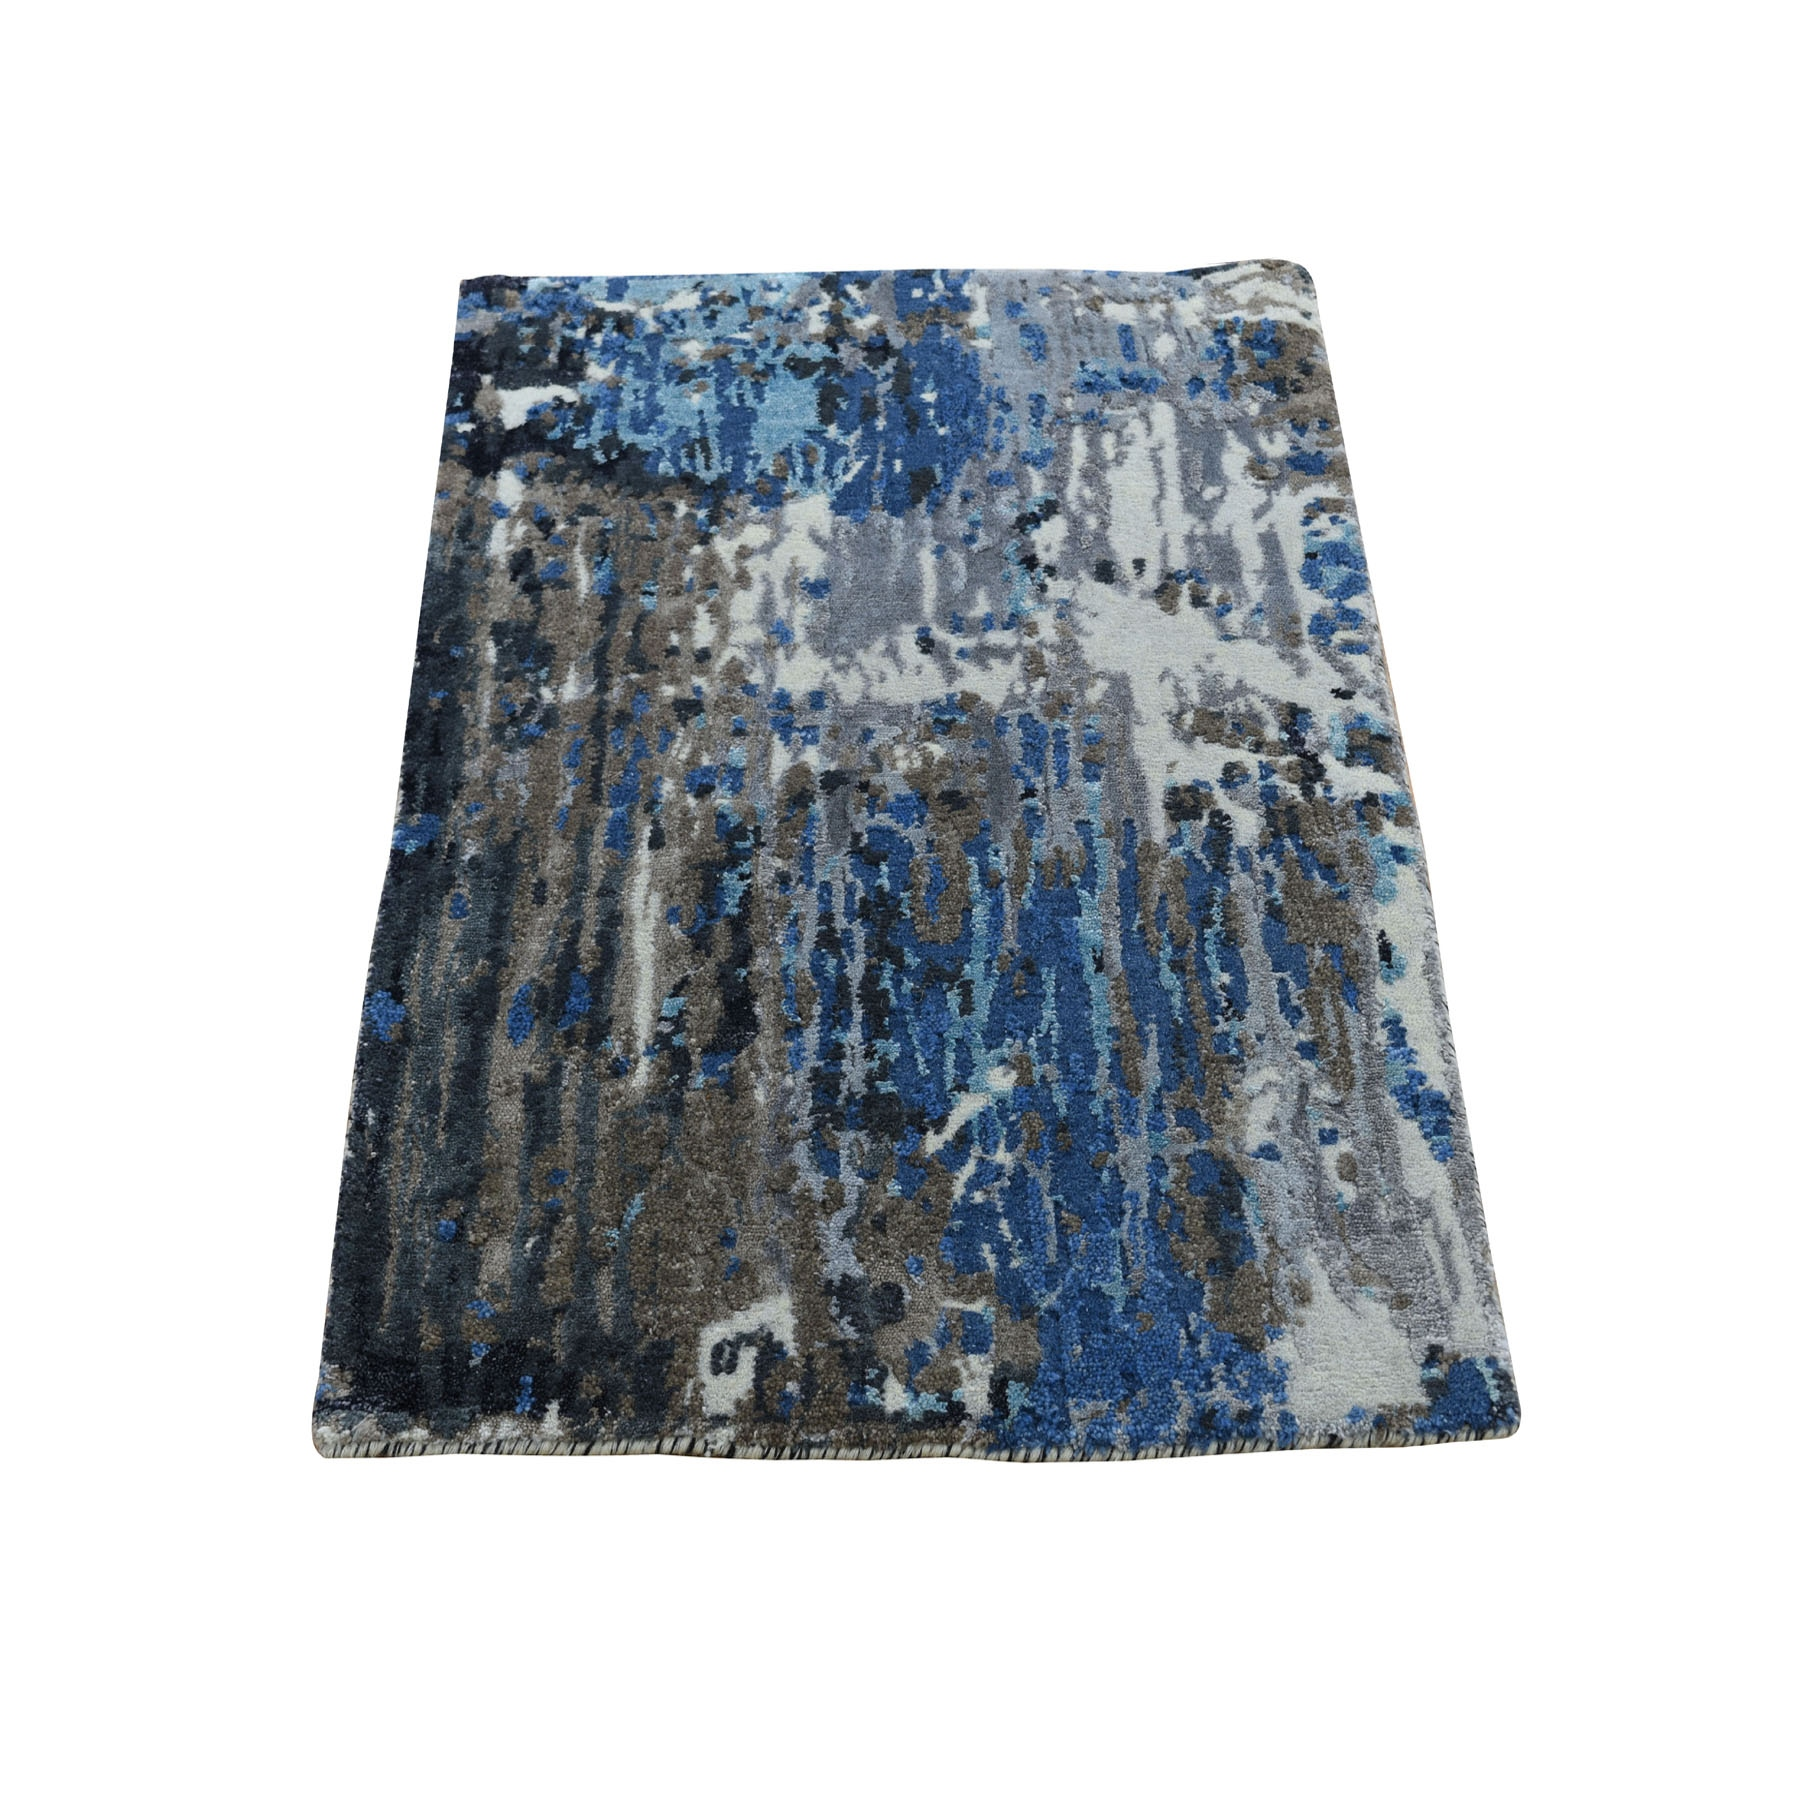 2'X3' Sample Blue-Gray Abstract Design Wool And Silk Hand Knotted Oriental Rug moad8099